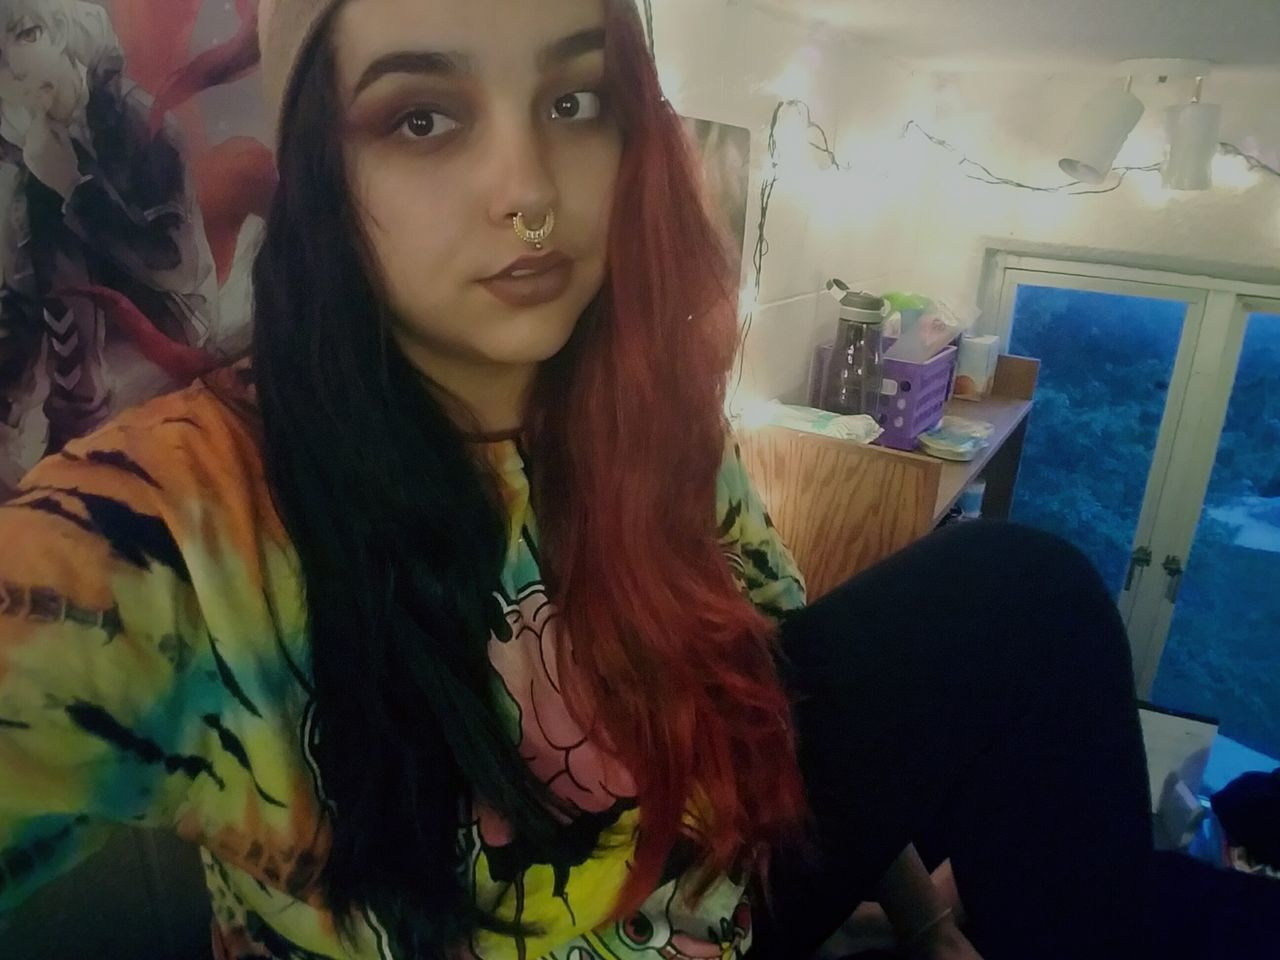 Unravel Tokyo Ghoul Goth Half Head Black And Red Beanie Tie Dye Dorm Life College Piercings Tattooed Alternative Girls Selfie ♥ Edgy Darklings First Eyeem Photo